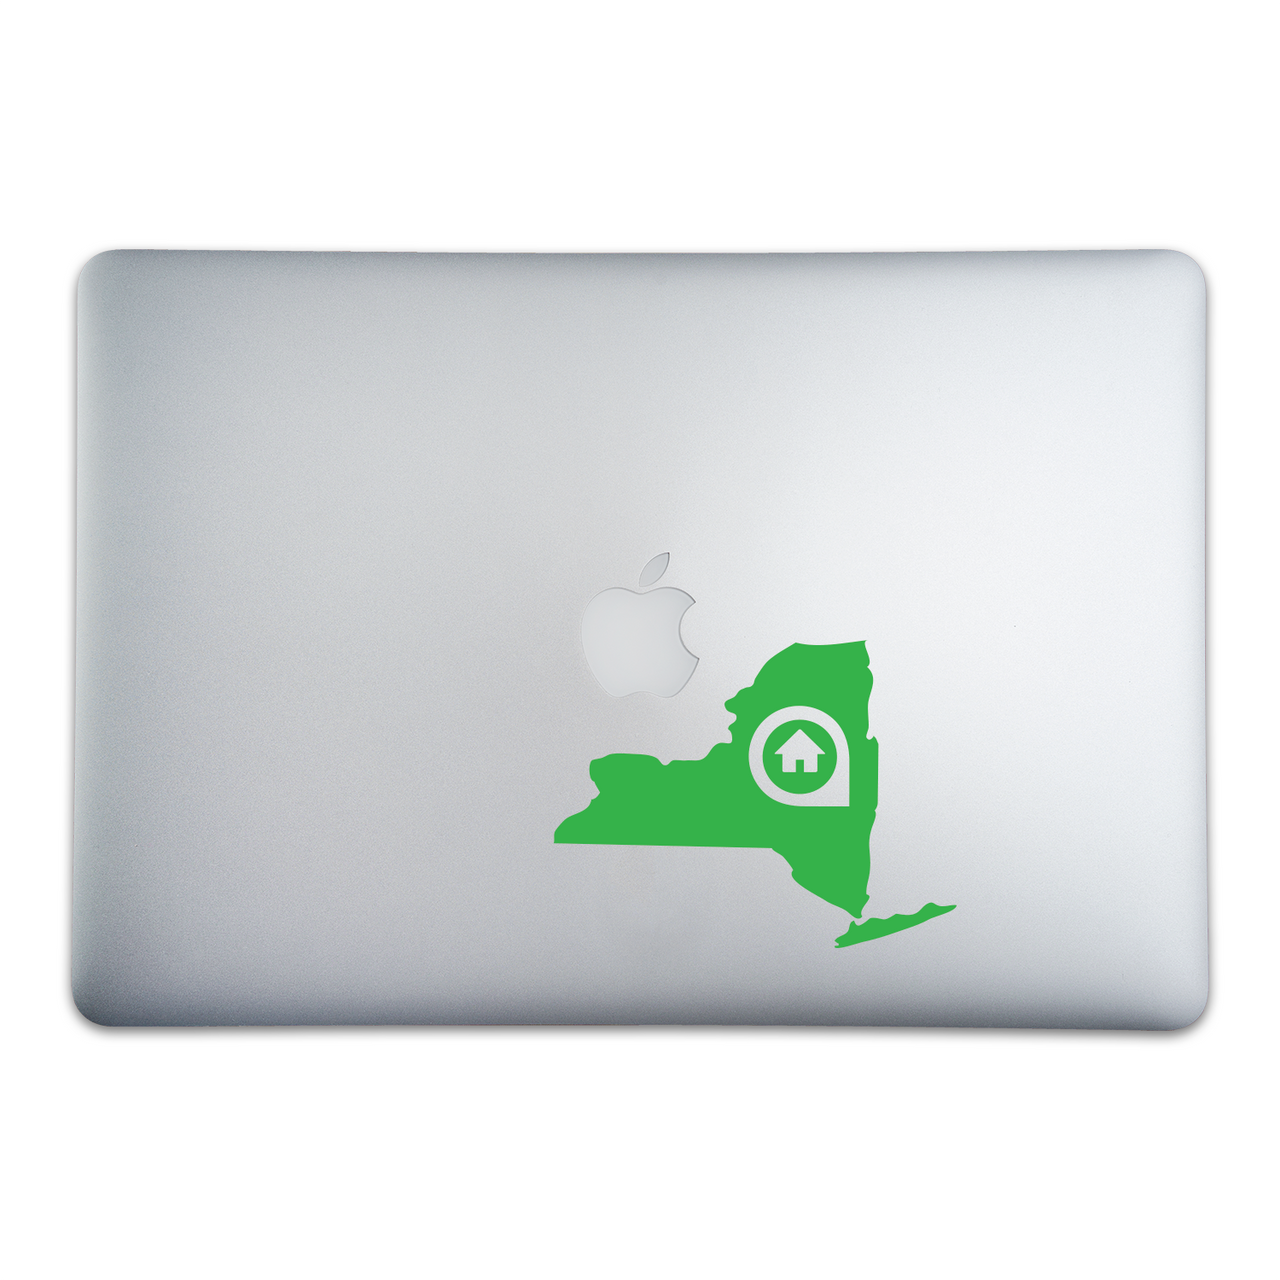 Albany New York Home Sticker On A 12-Inch Macbook